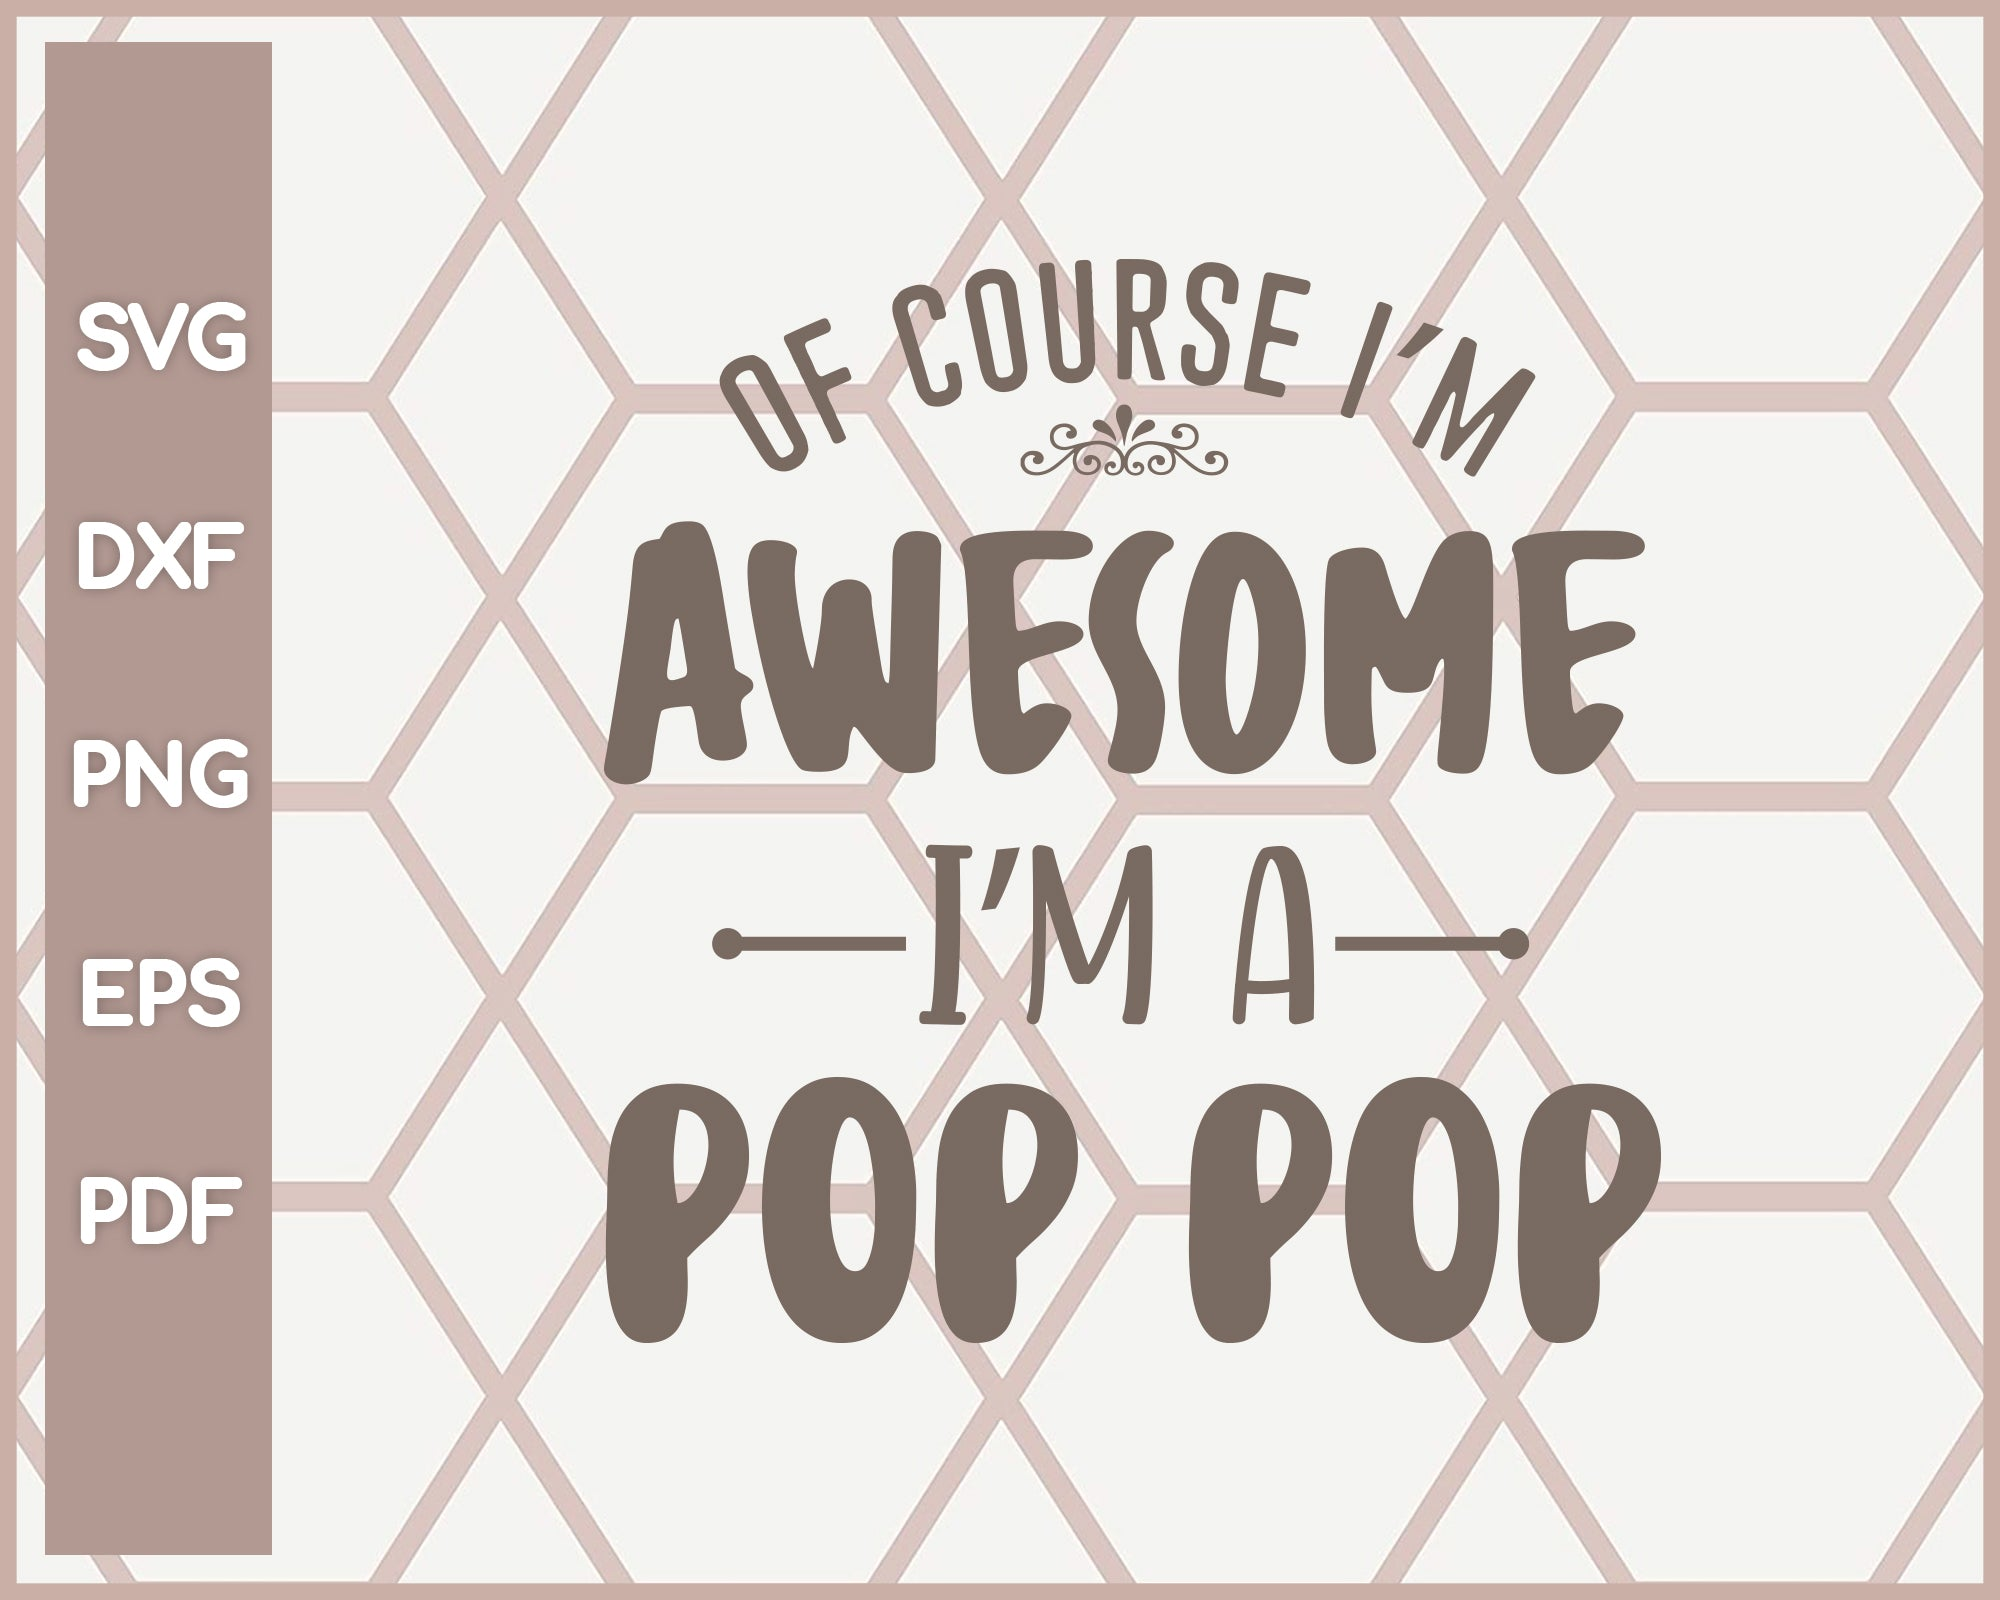 I Am A Awsesome Pop Pop Funny svg Cut File For Cricut Silhouette And eps png Printable Artworks